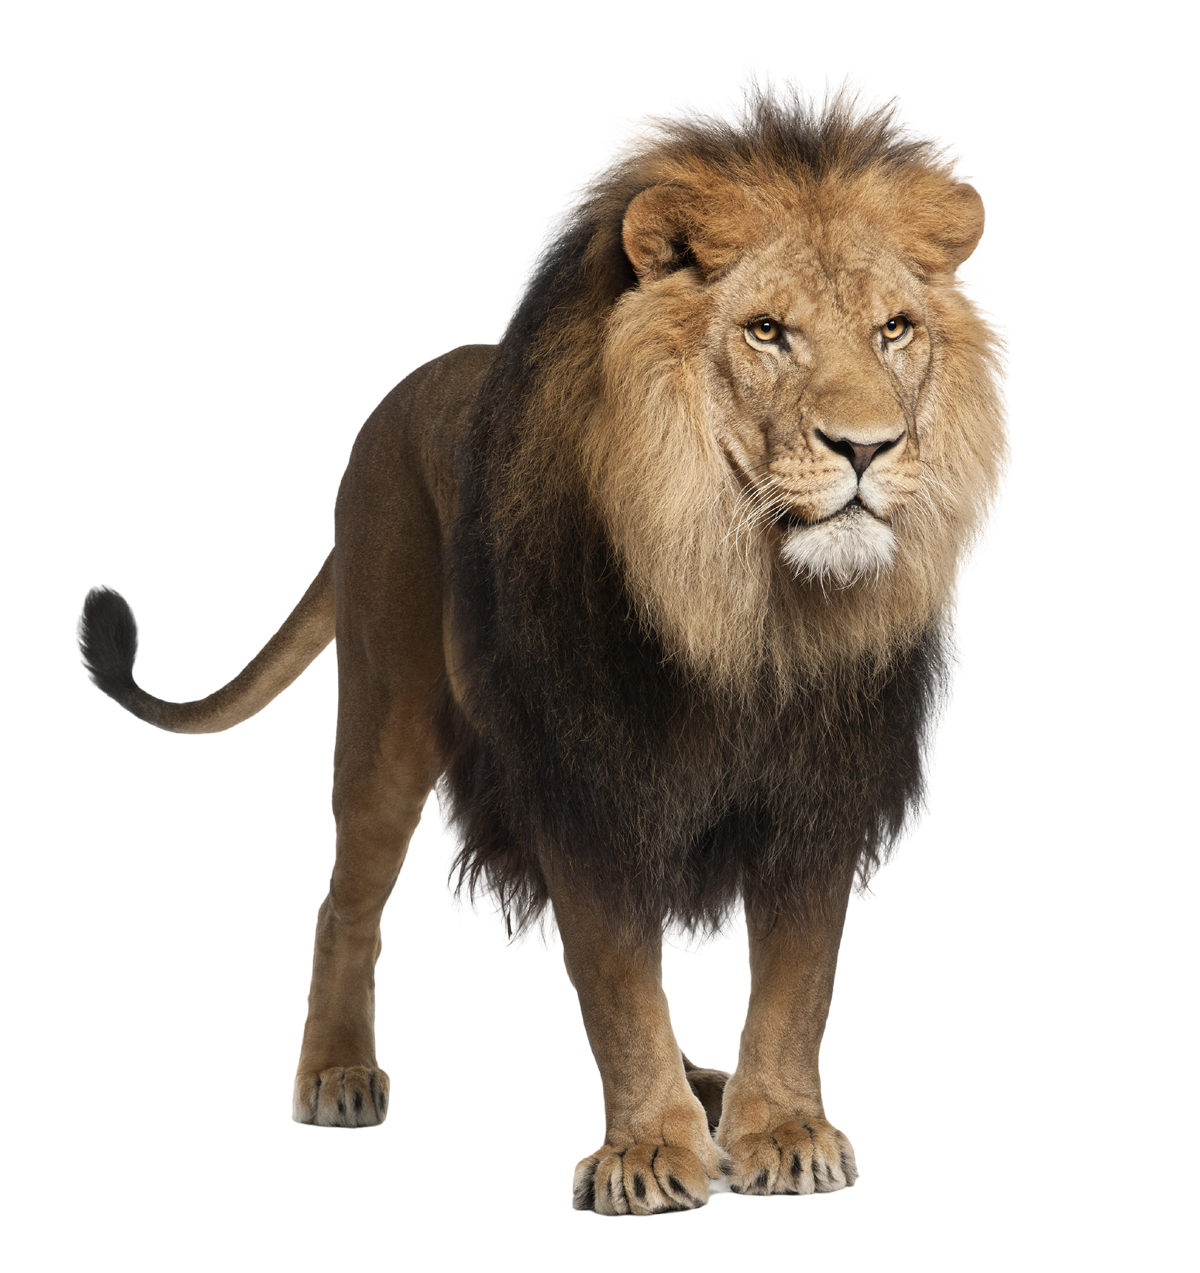 Lions clipart open mouth. Lion png images and